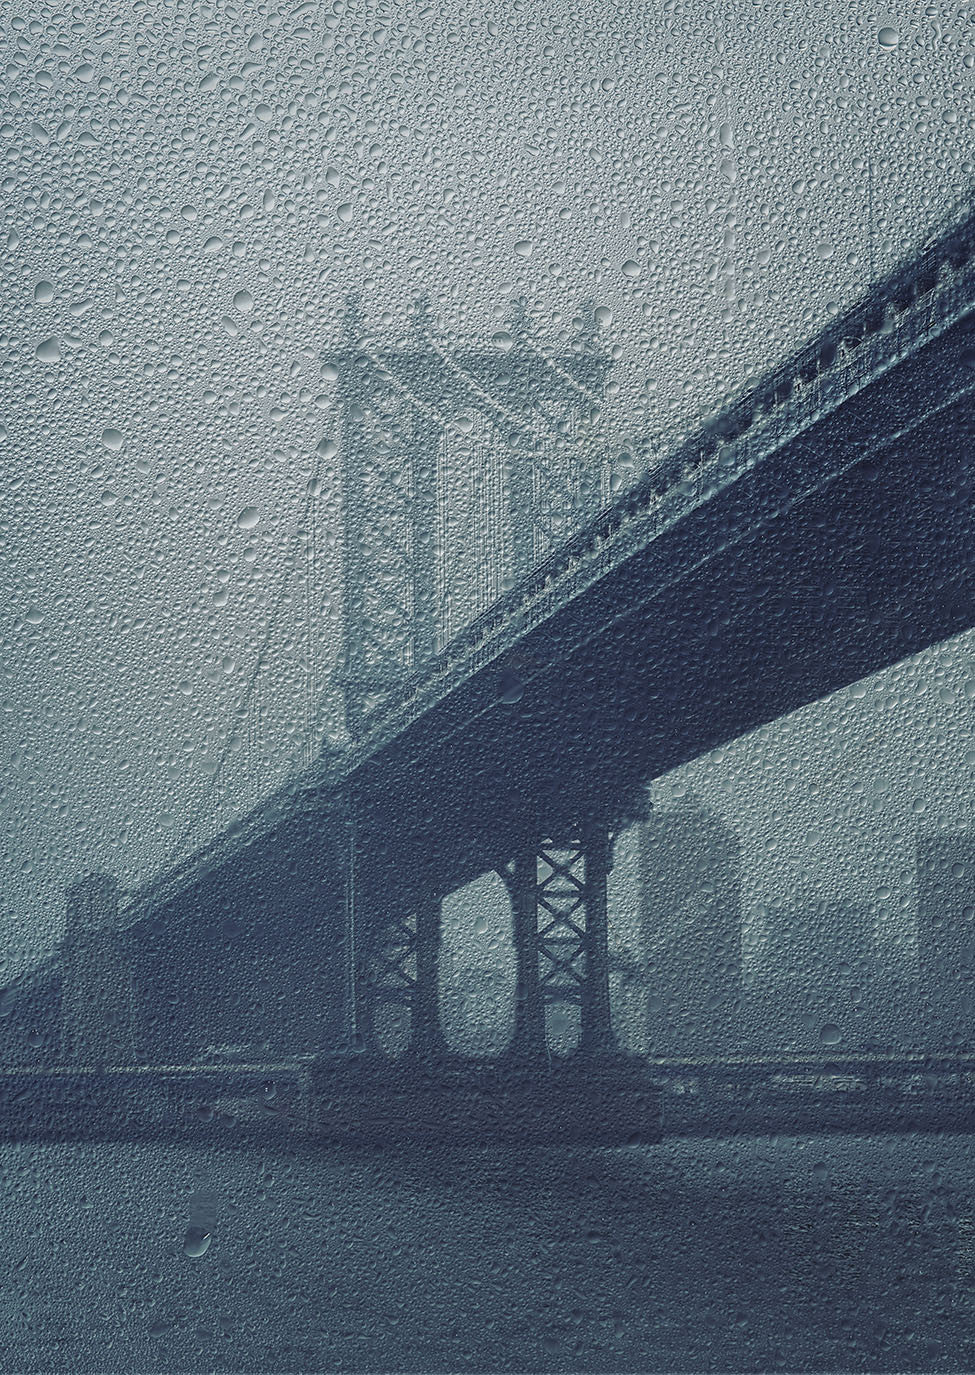 New York Through the Rain